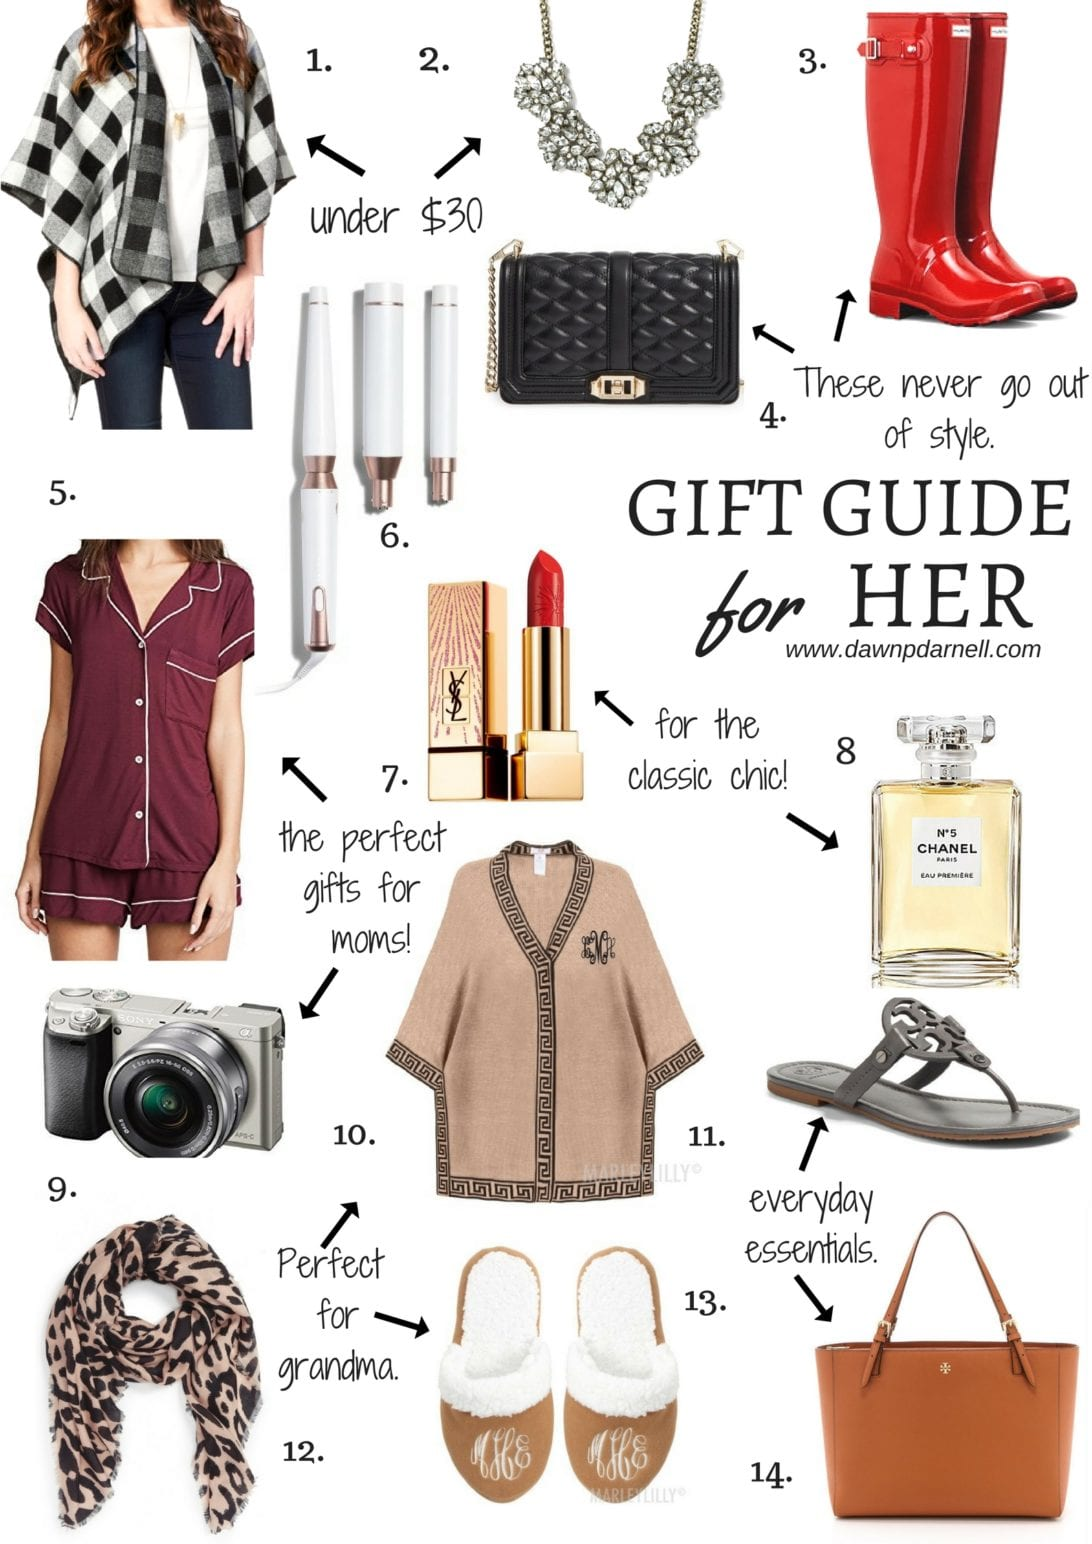 hunter boots, hunter boots outfit, holiday outfits, how to wear hunter boots, christmas outfits with hunter boots, gift guide for her, red hunter boots, hunter boots for the holidays, gift guide for her, tory burch miller sandals, Rebecca Minkoff love crossbody bag, tory burch tote